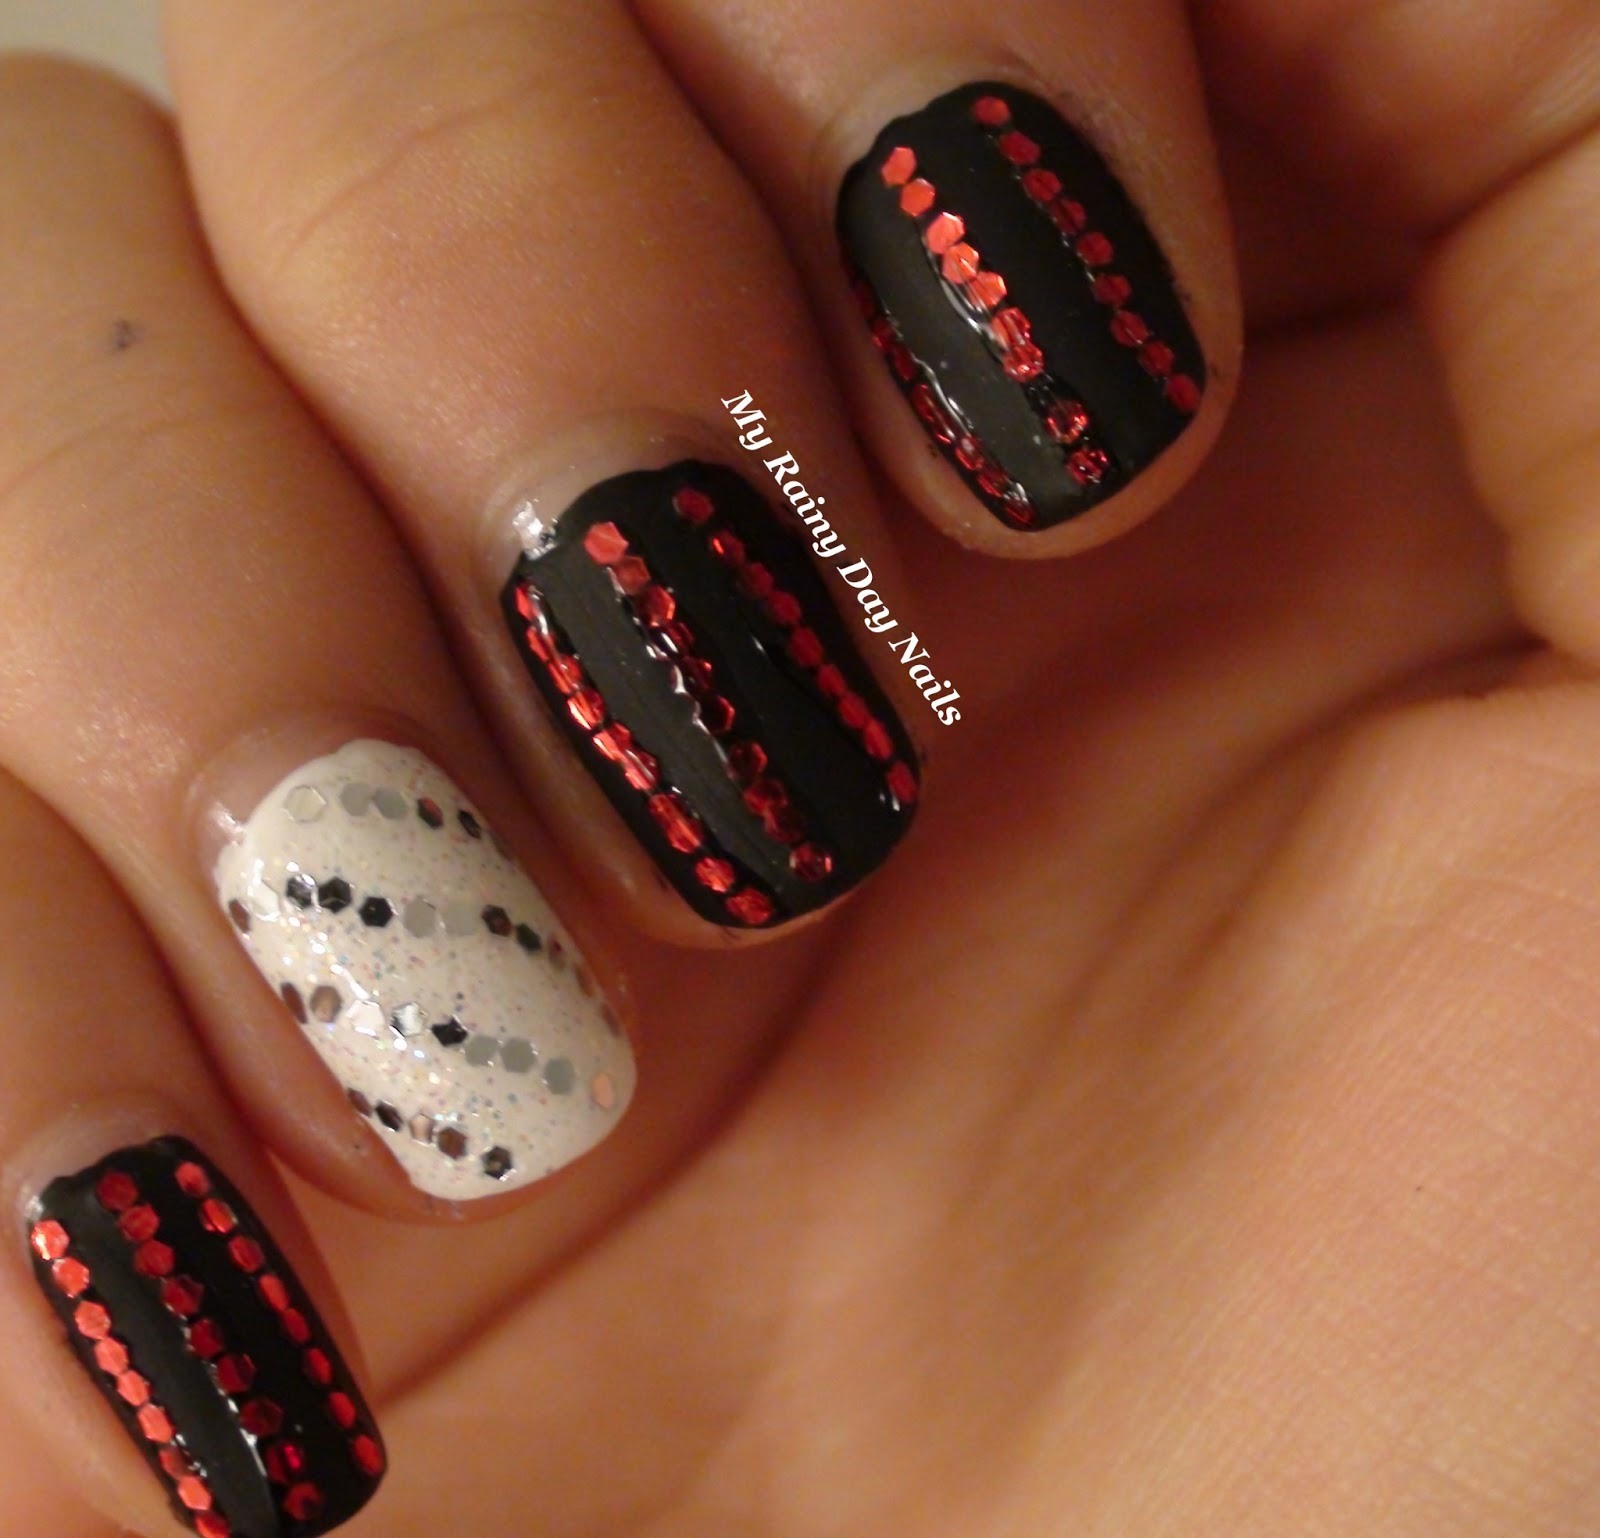 My Rainy Day Nails: Sunday Nail Art-Chicago inspired!